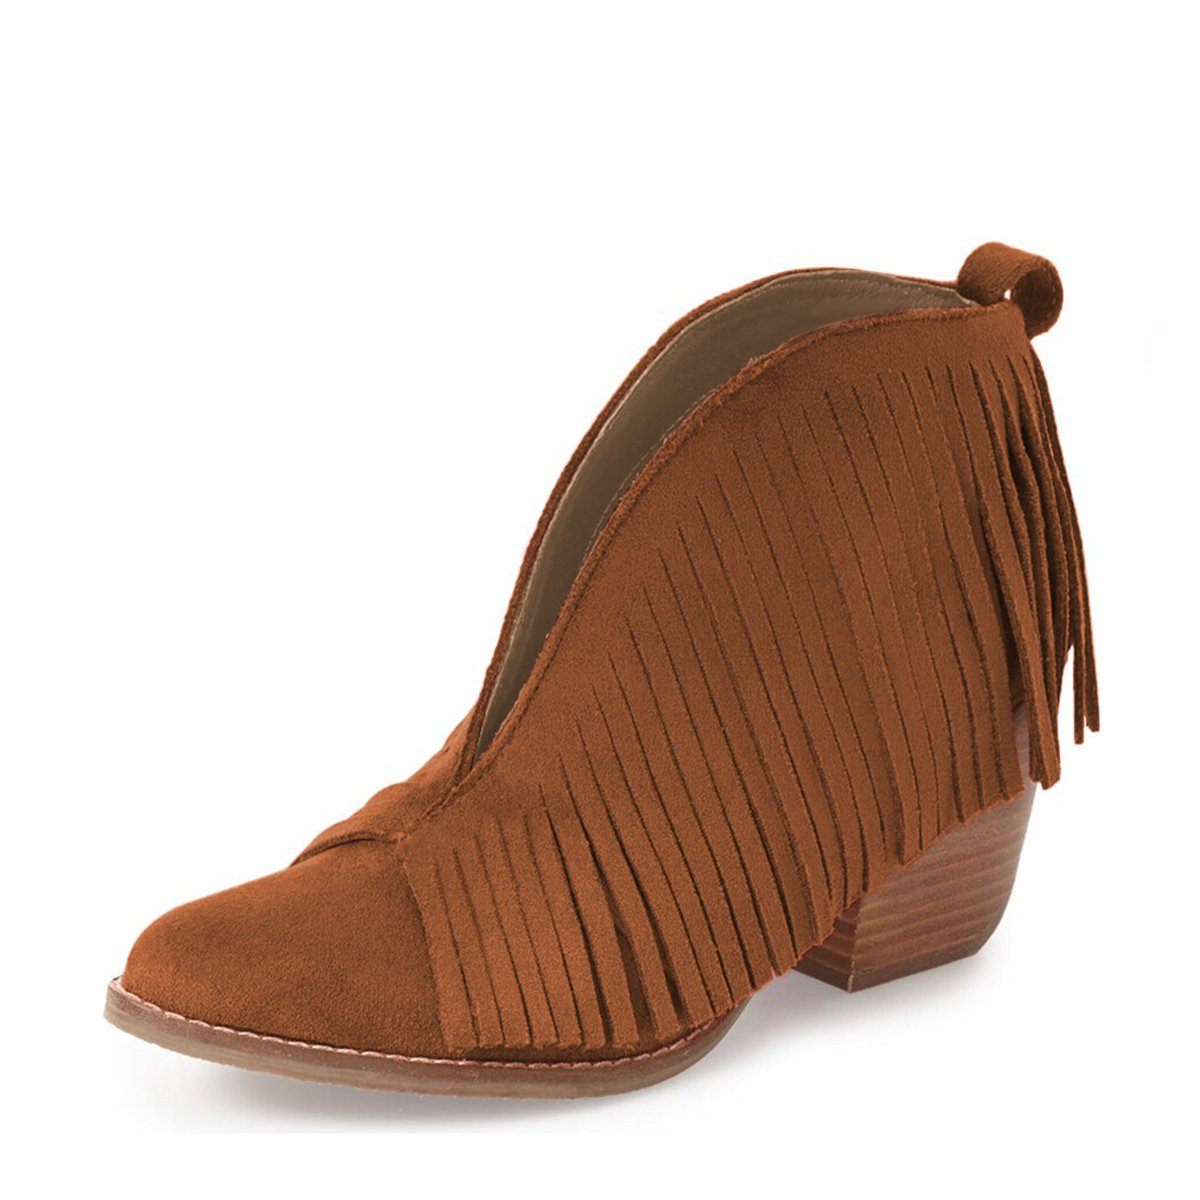 YDN Western Ankle High Boots with Tassels Round Toe Block Heel Suede Retro Booties B01KC2A9Y2 14 B(M) US|Brown